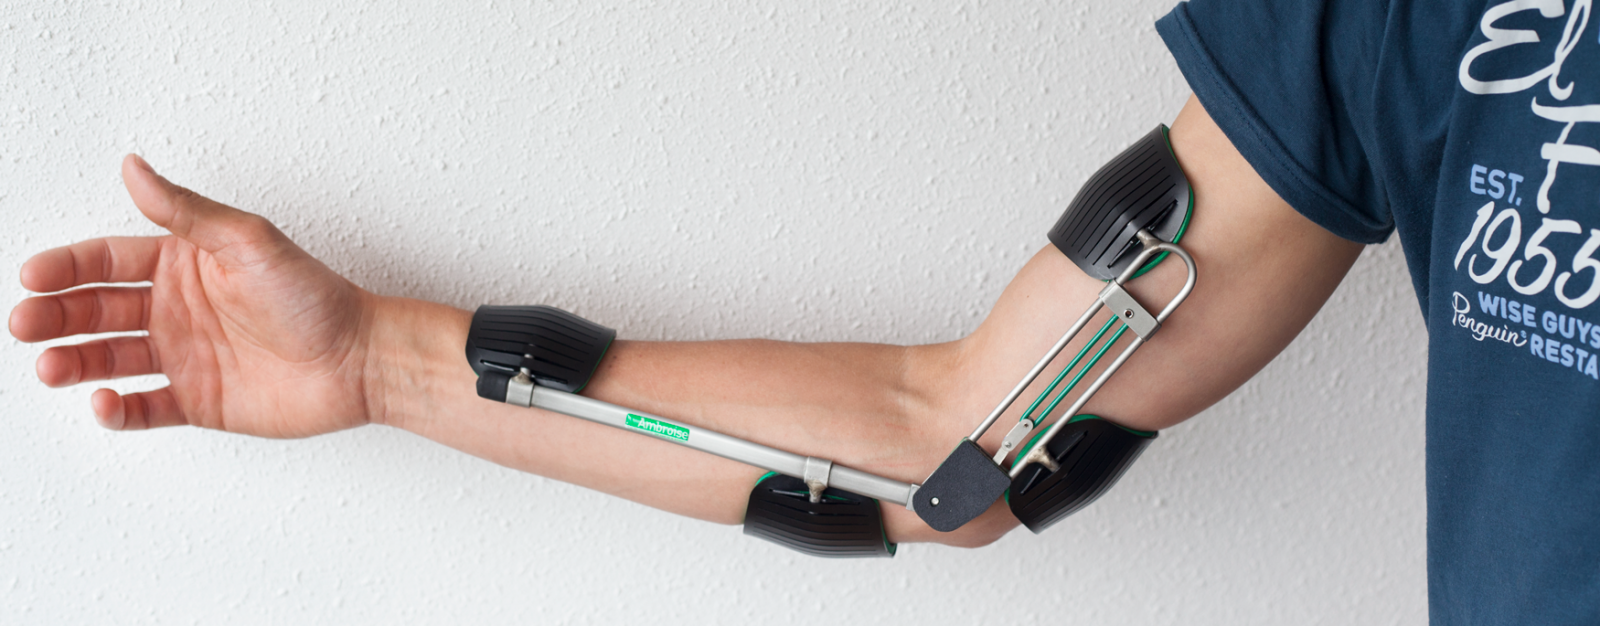 Wilmer Stretching Orthosis